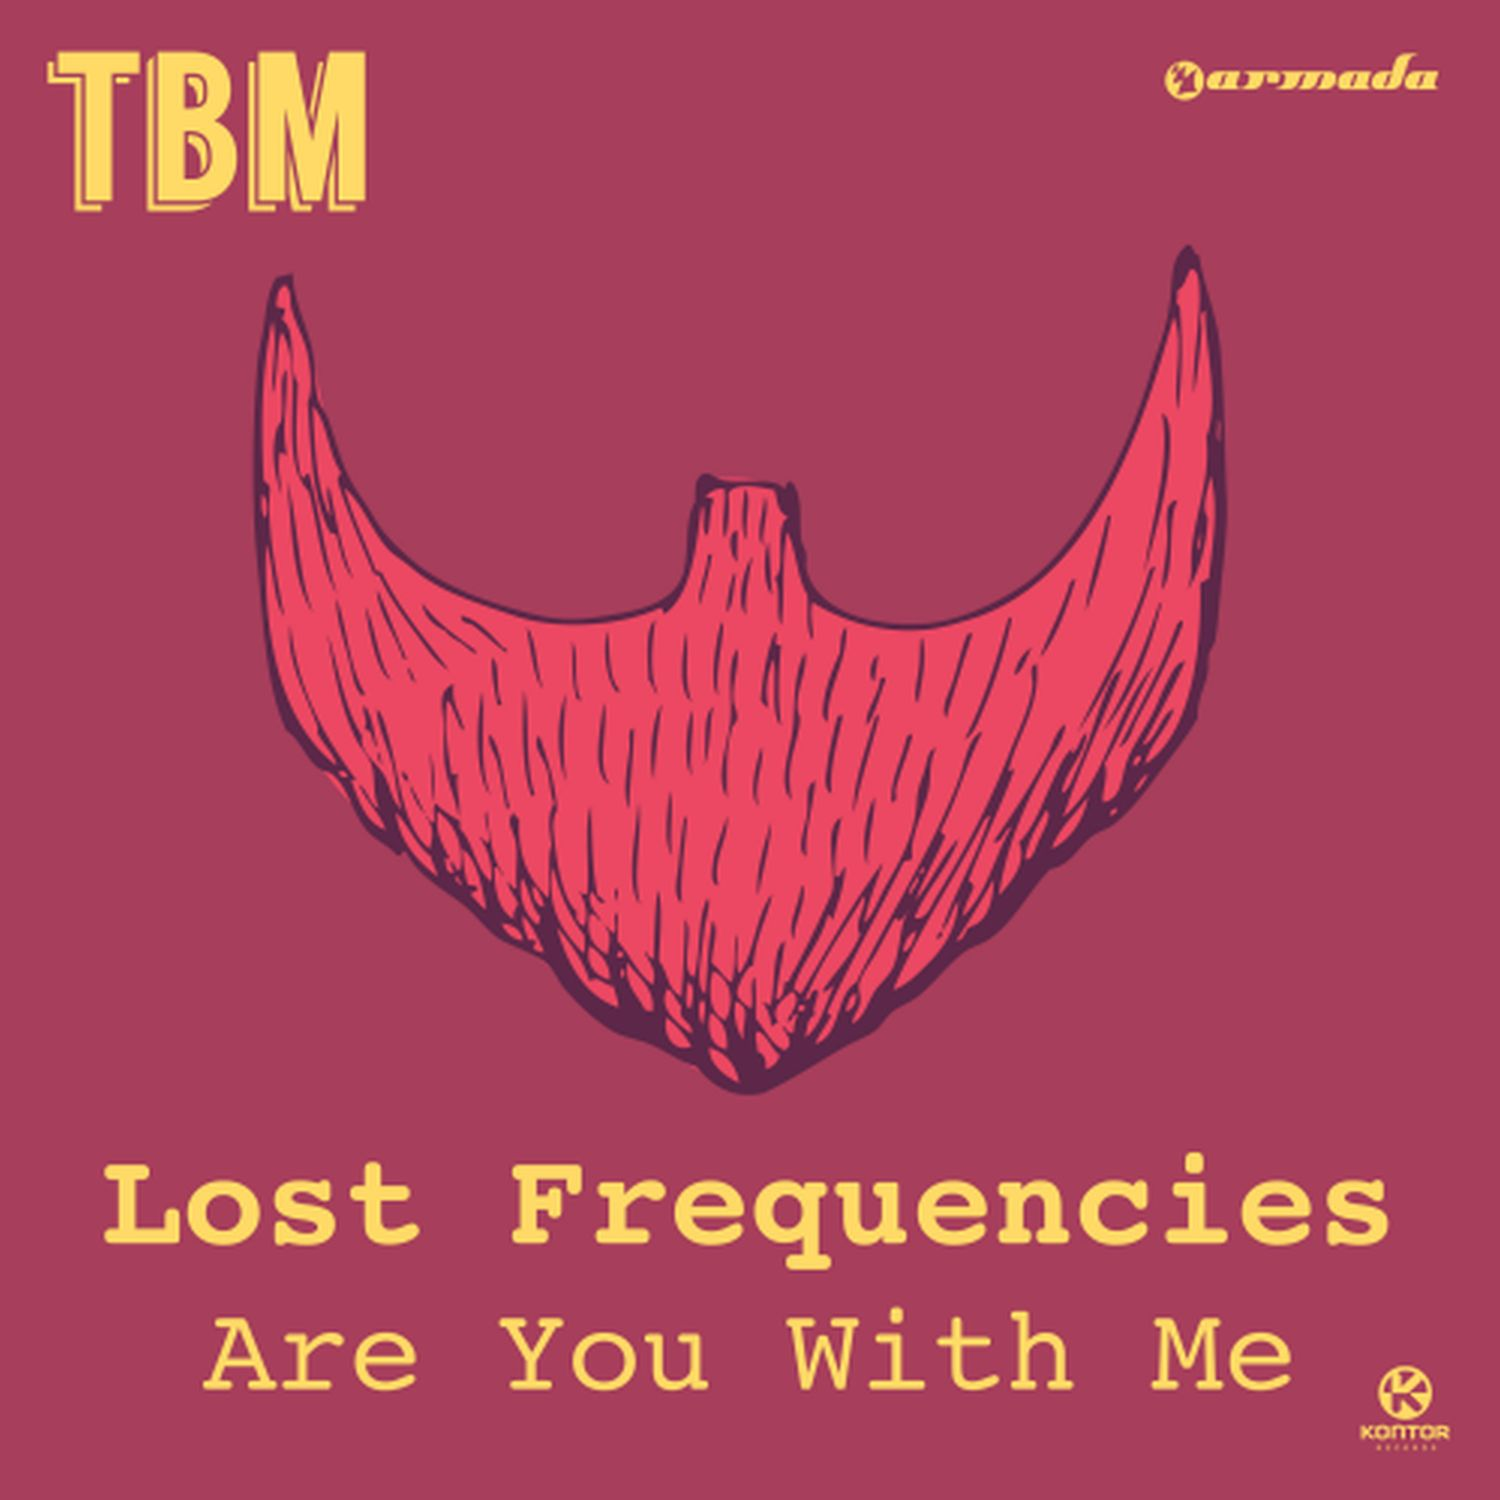 Cover: Are you with me, Lost Frequencies